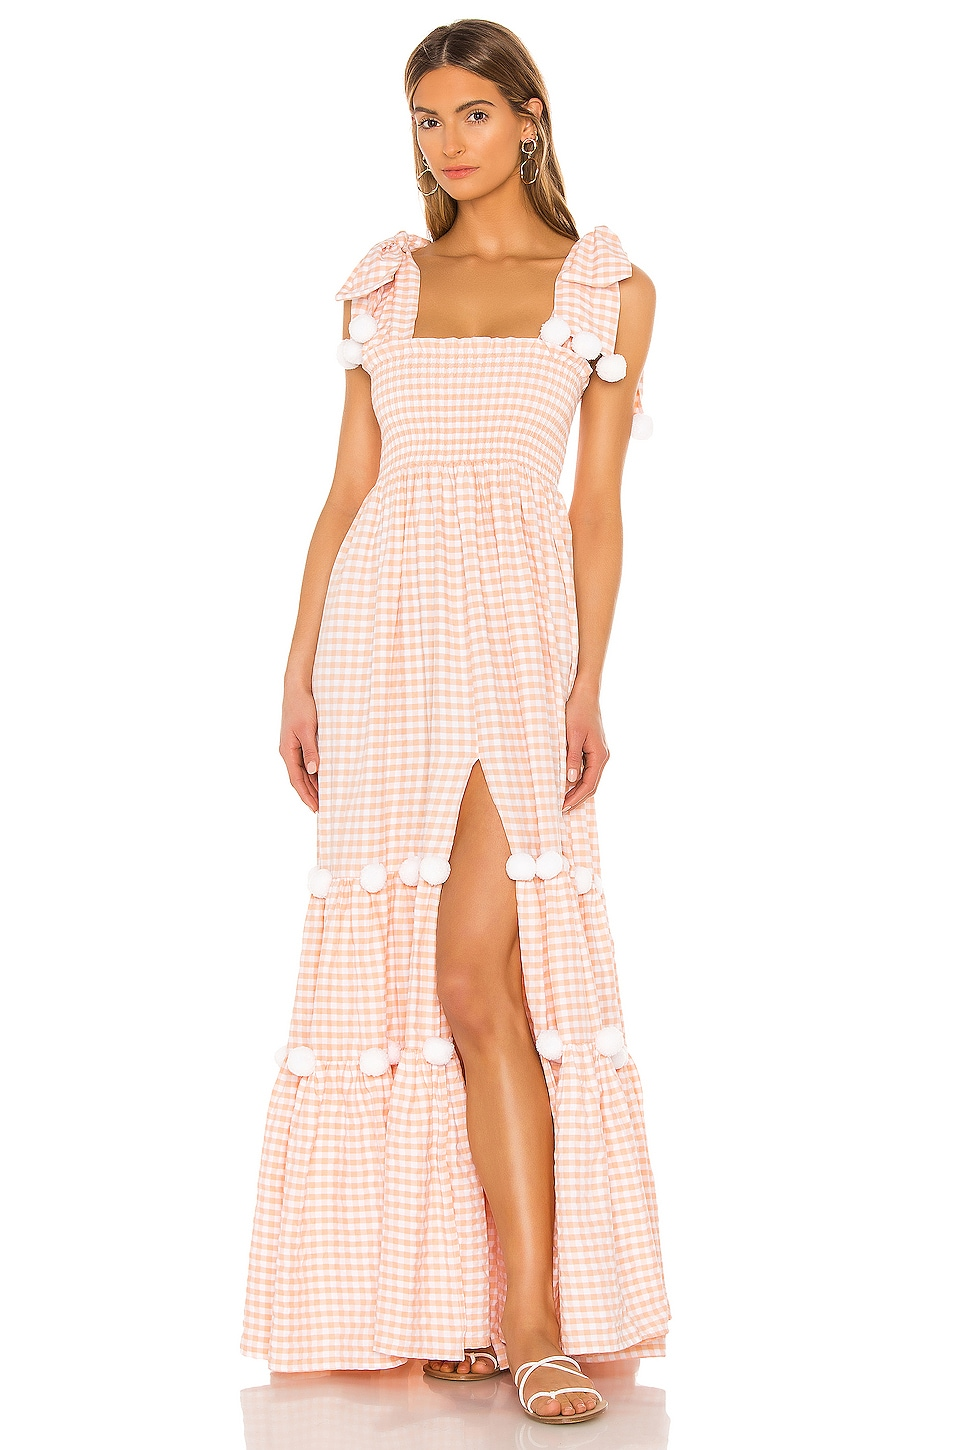 Pippa Long Dress             Sundress                                                                                                       CA$ 231.76 2